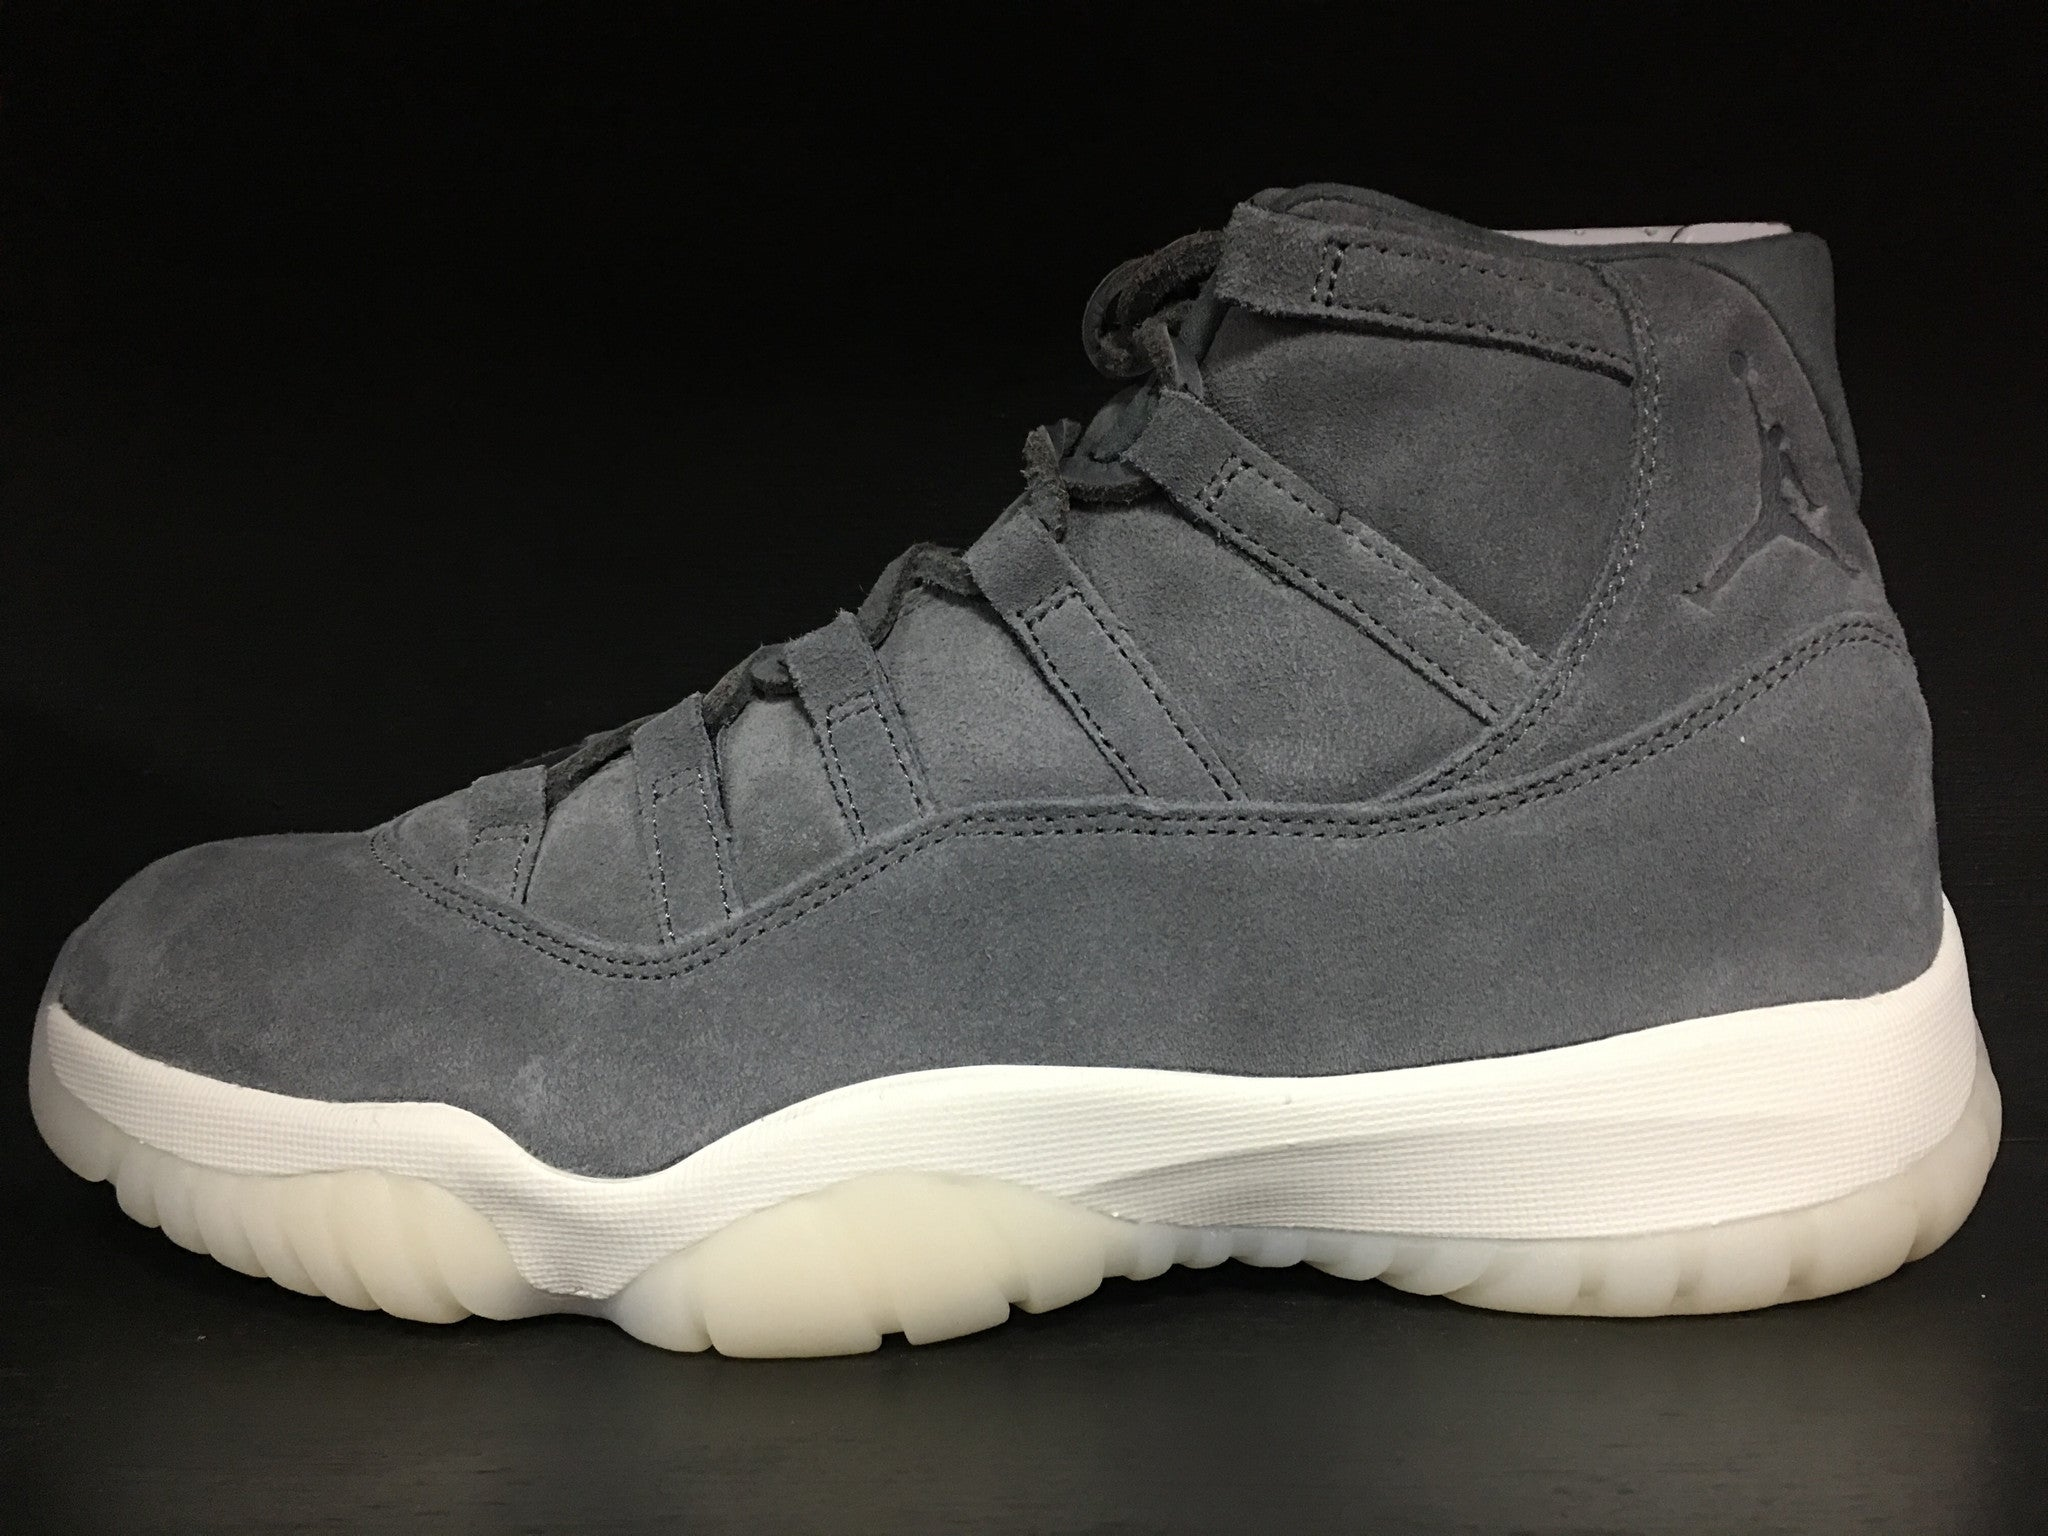 Air Jordan 11 Retro Premium Pinnacle